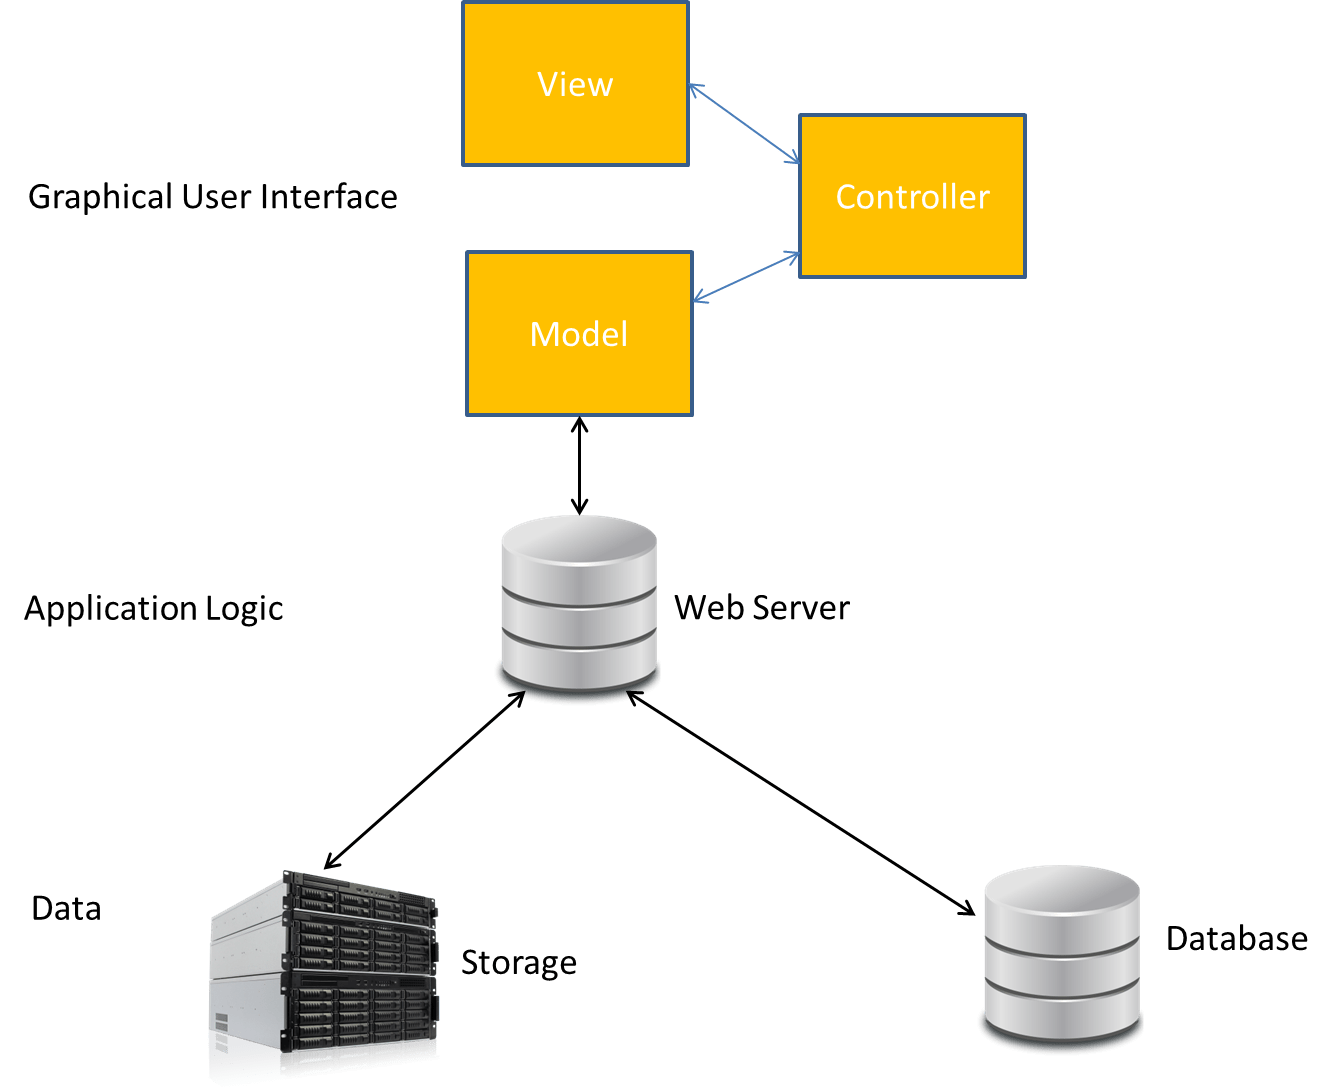 application server diagram viper anchor winch wiring web services model in mvc interfacing with tier 3